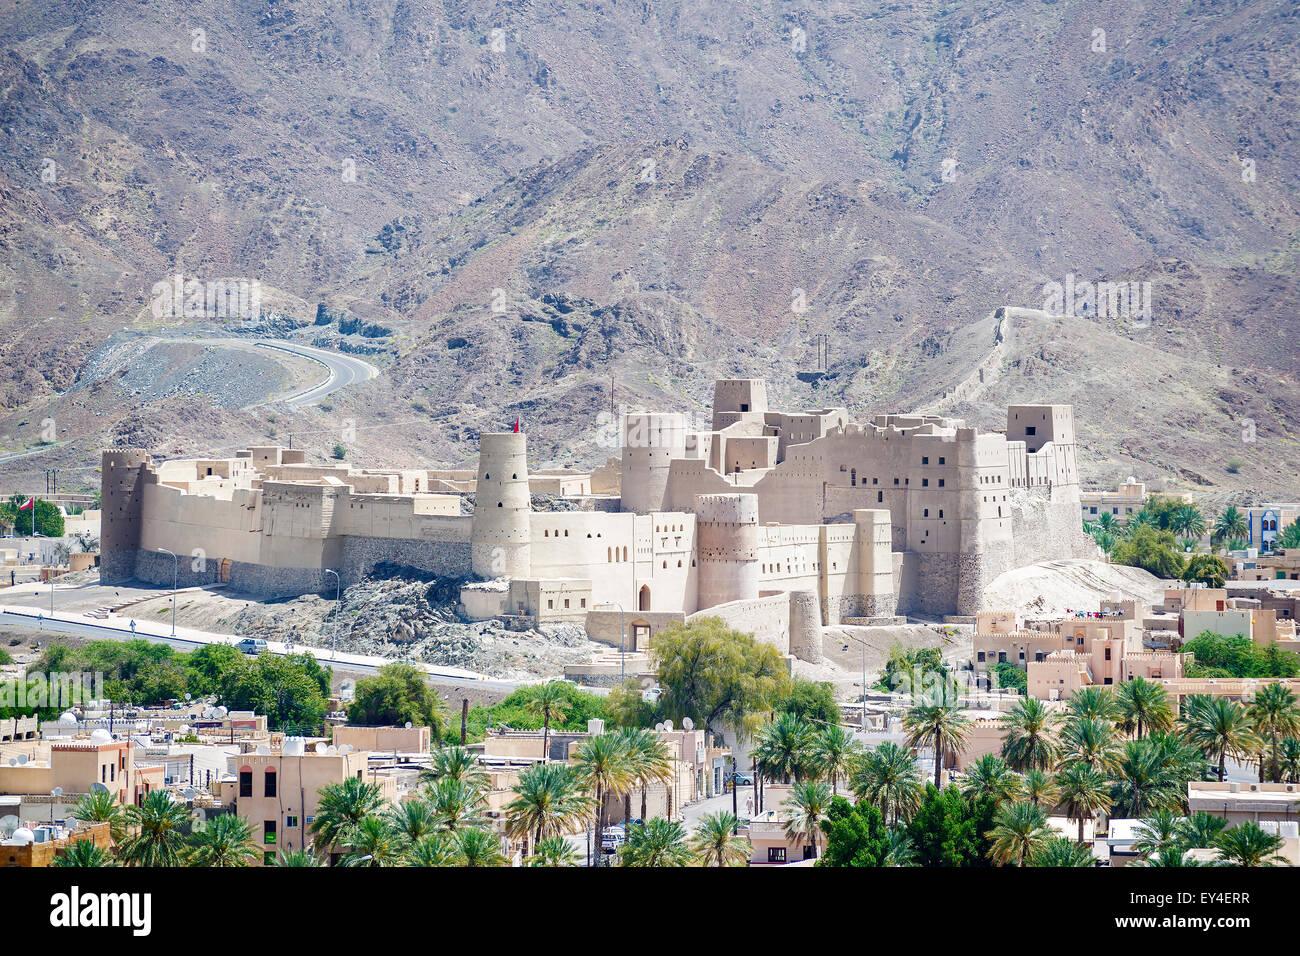 Fort Bahla in Sultanate of Oman Middle East - Stock Image